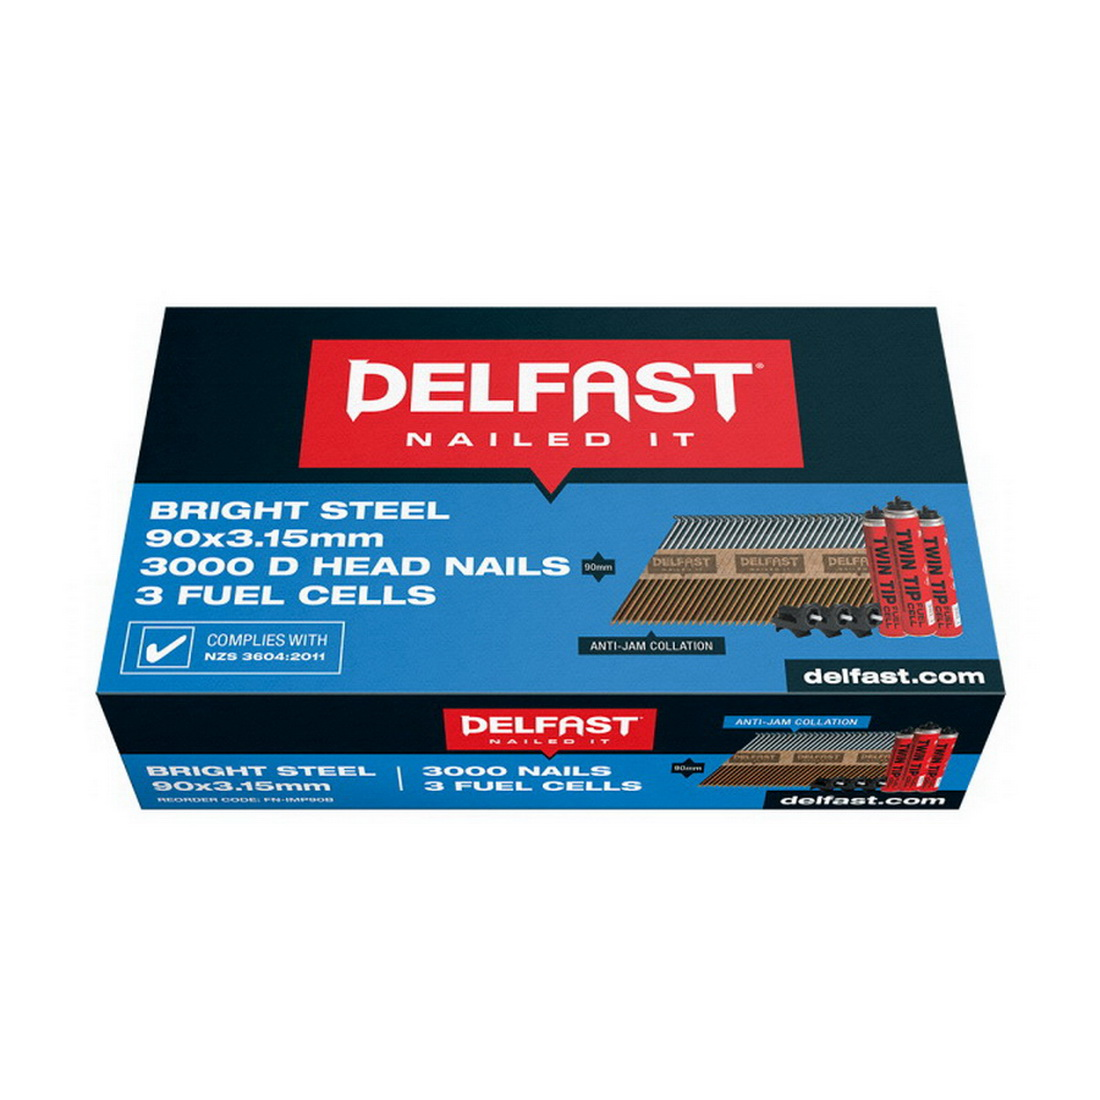 D Head Nail & 3 Fuel 3.15 x 90mm Smooth Bright 3000/ Pack